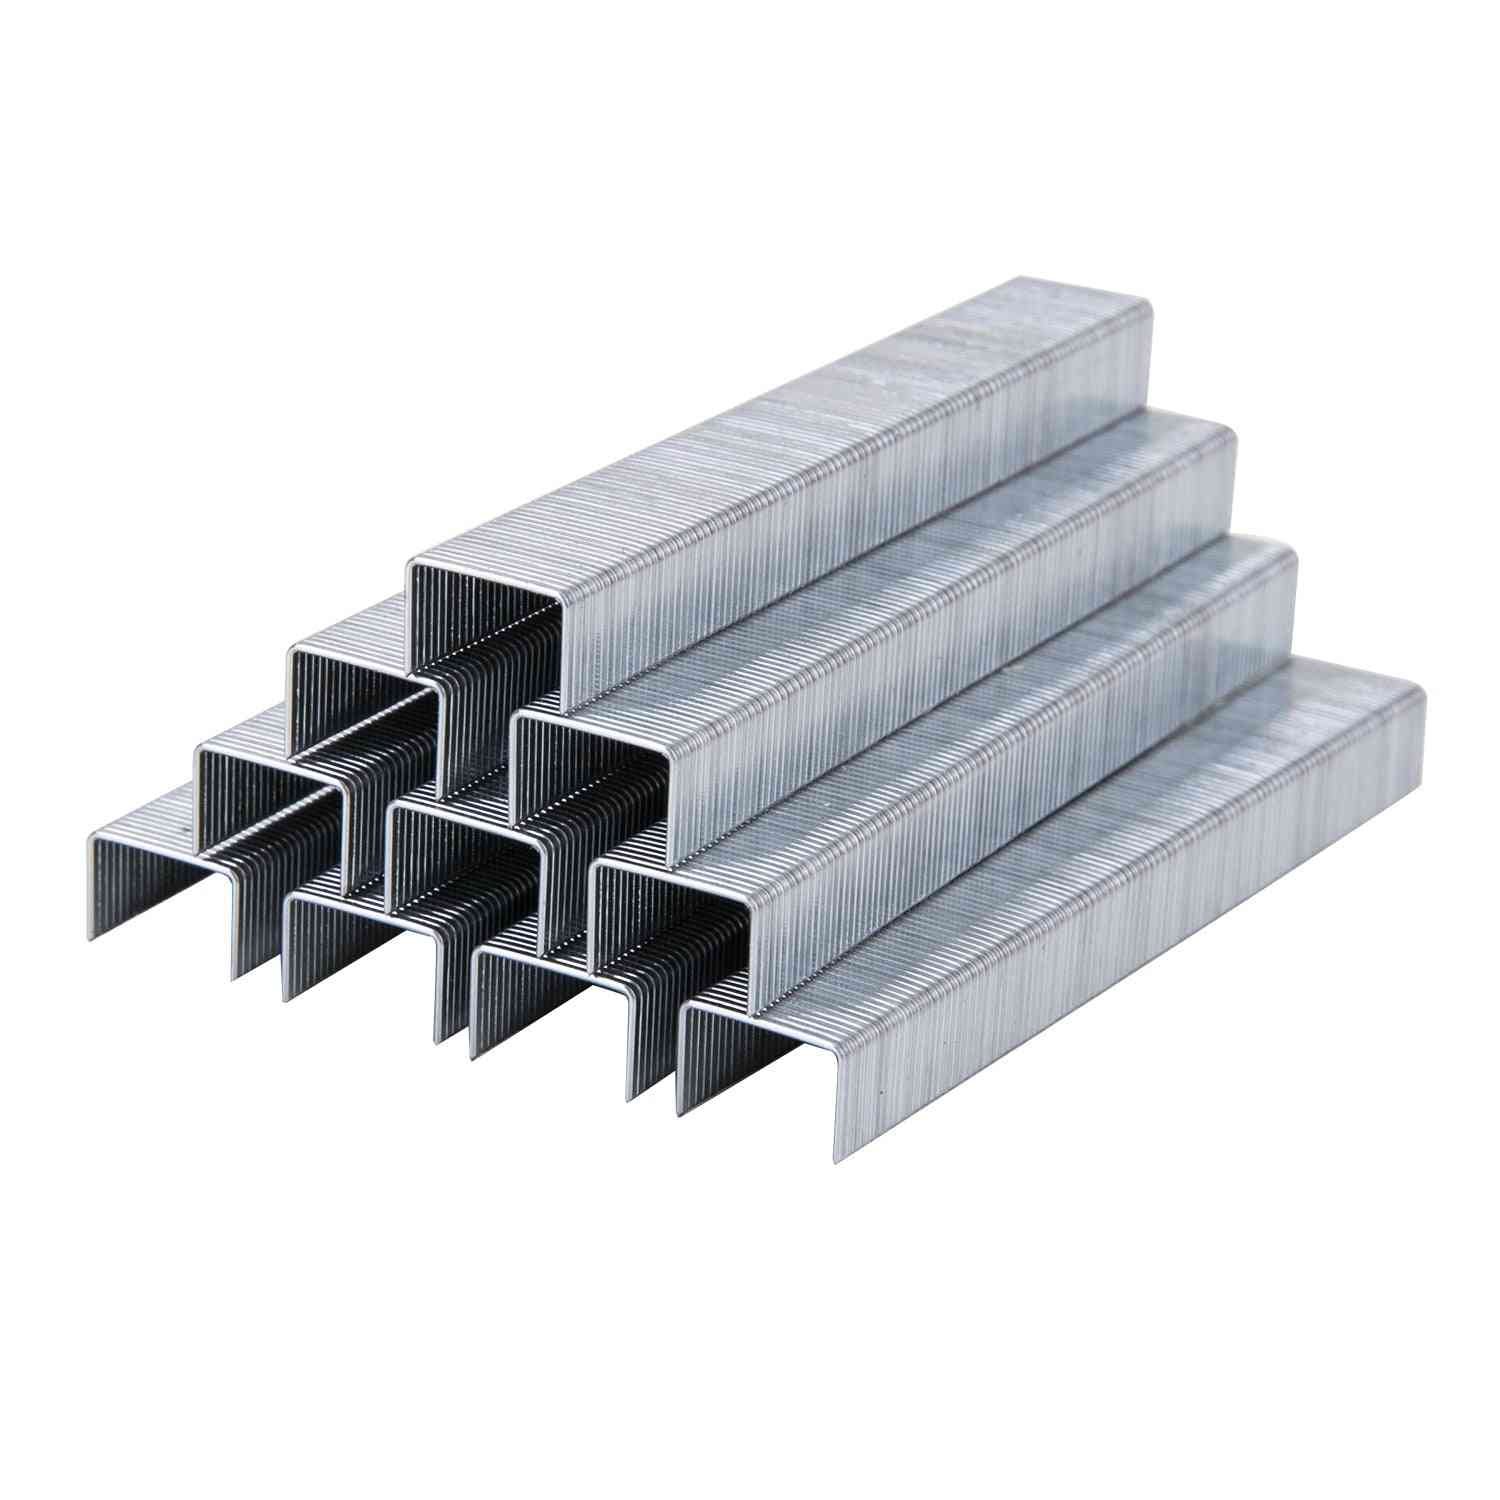 Zinc Plated Wire, Iron Nail Staple For Speciality Stapler